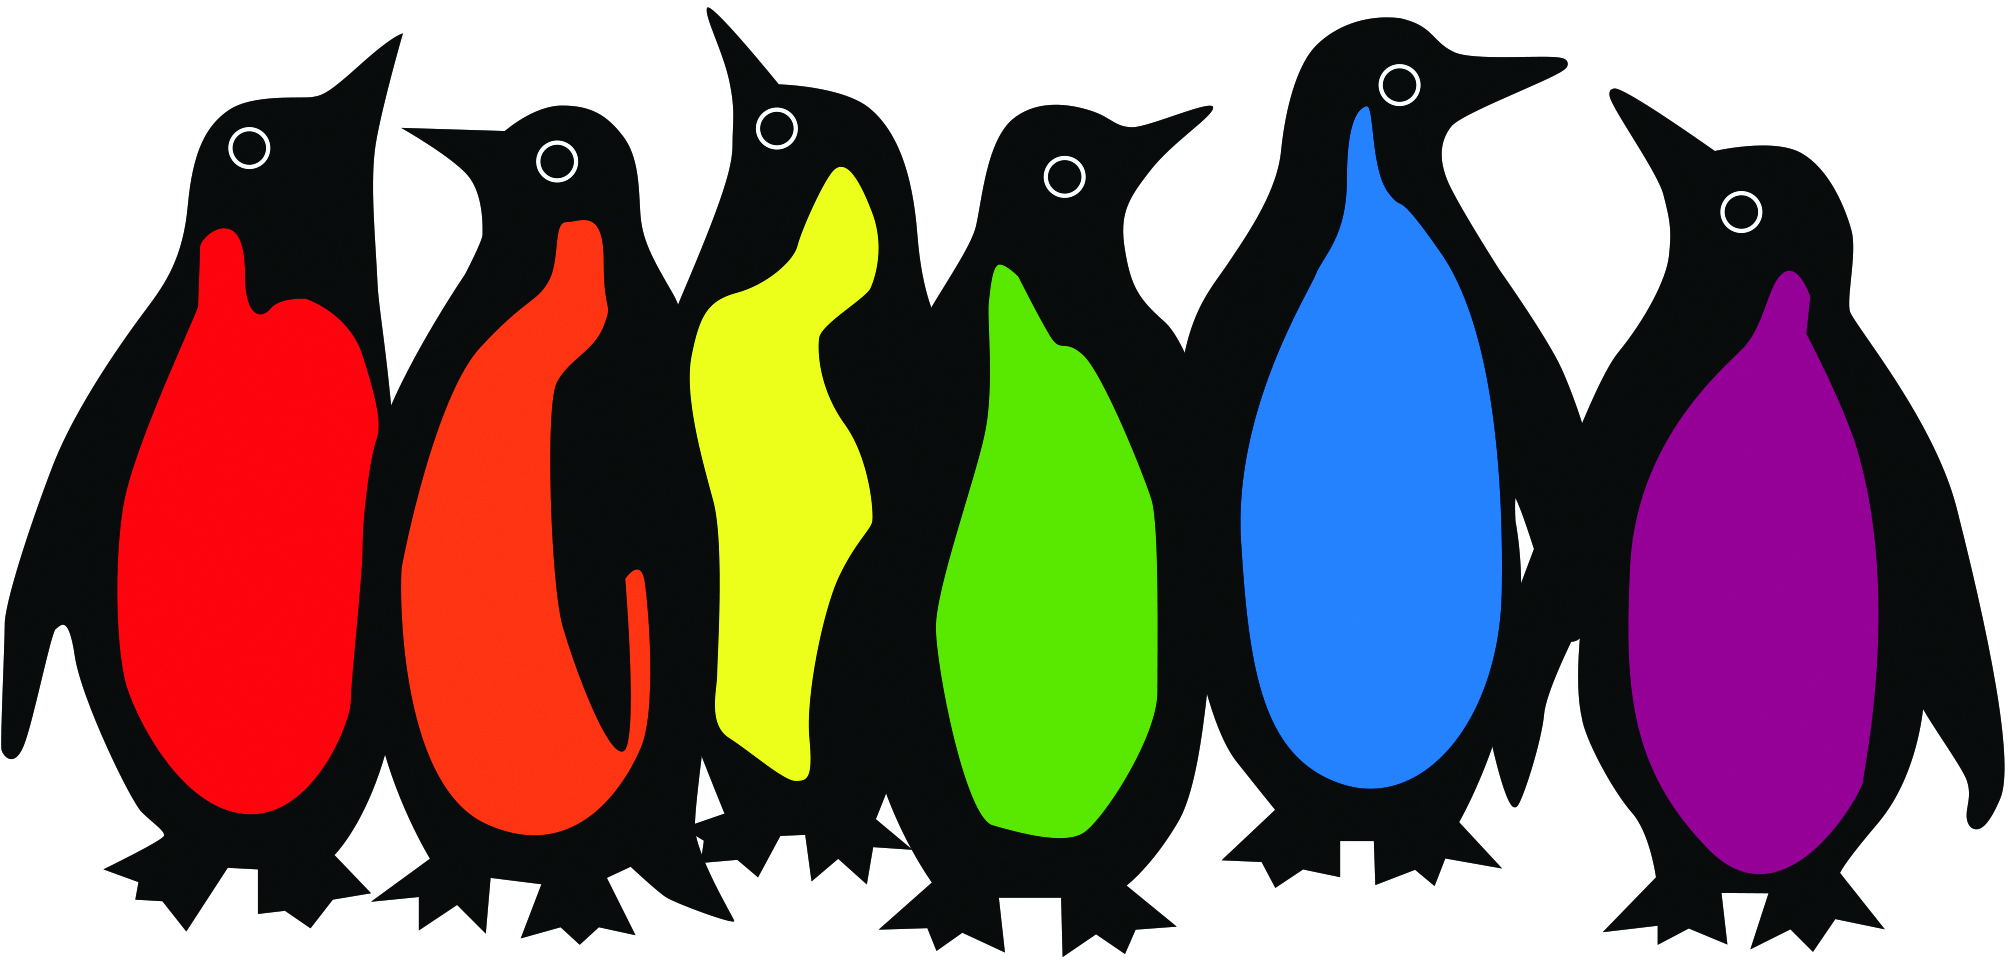 Penguins only from logo